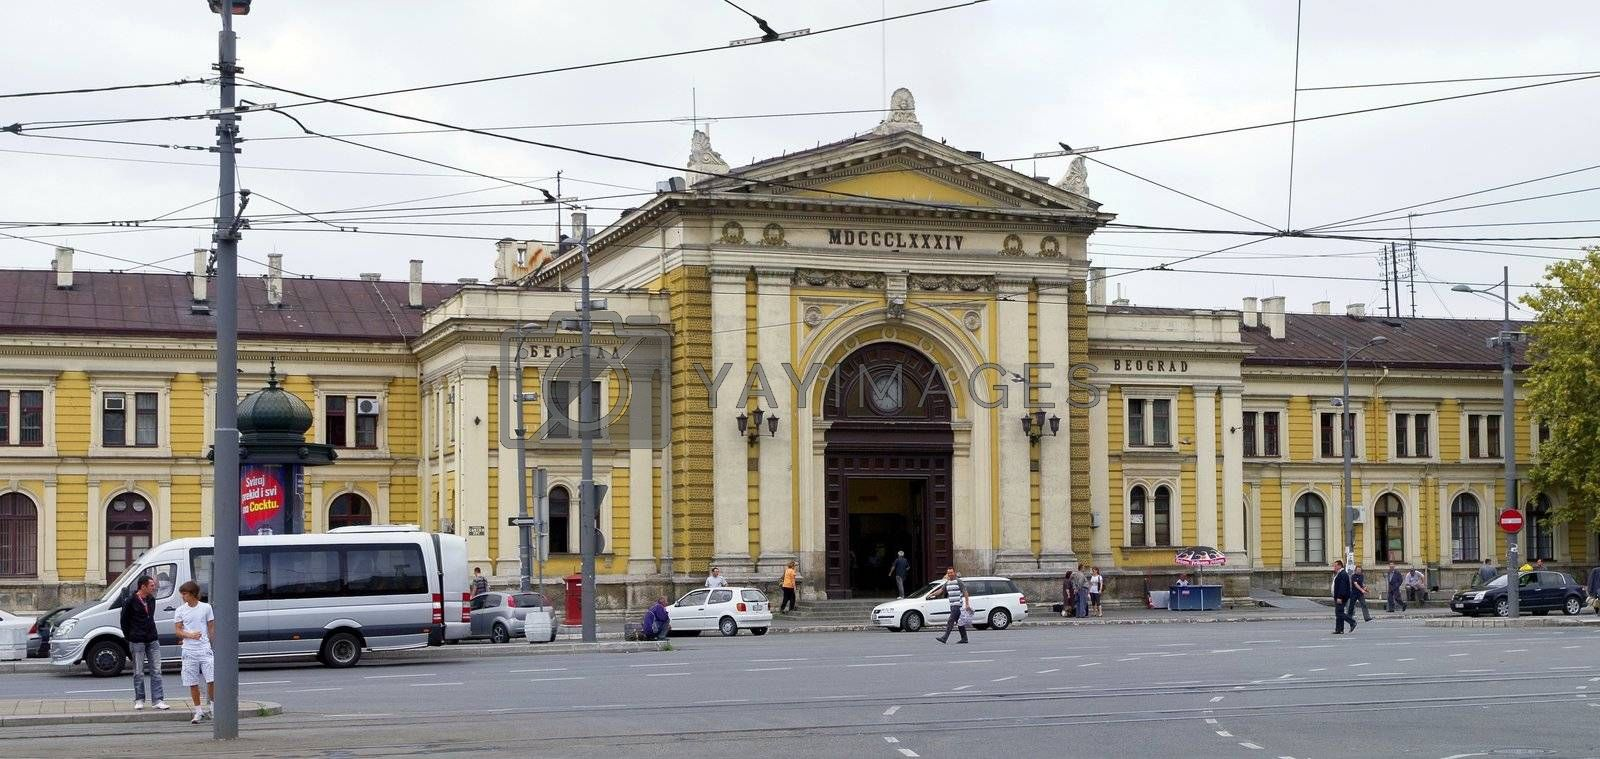 Old railway station building in Belgrade, Serbia